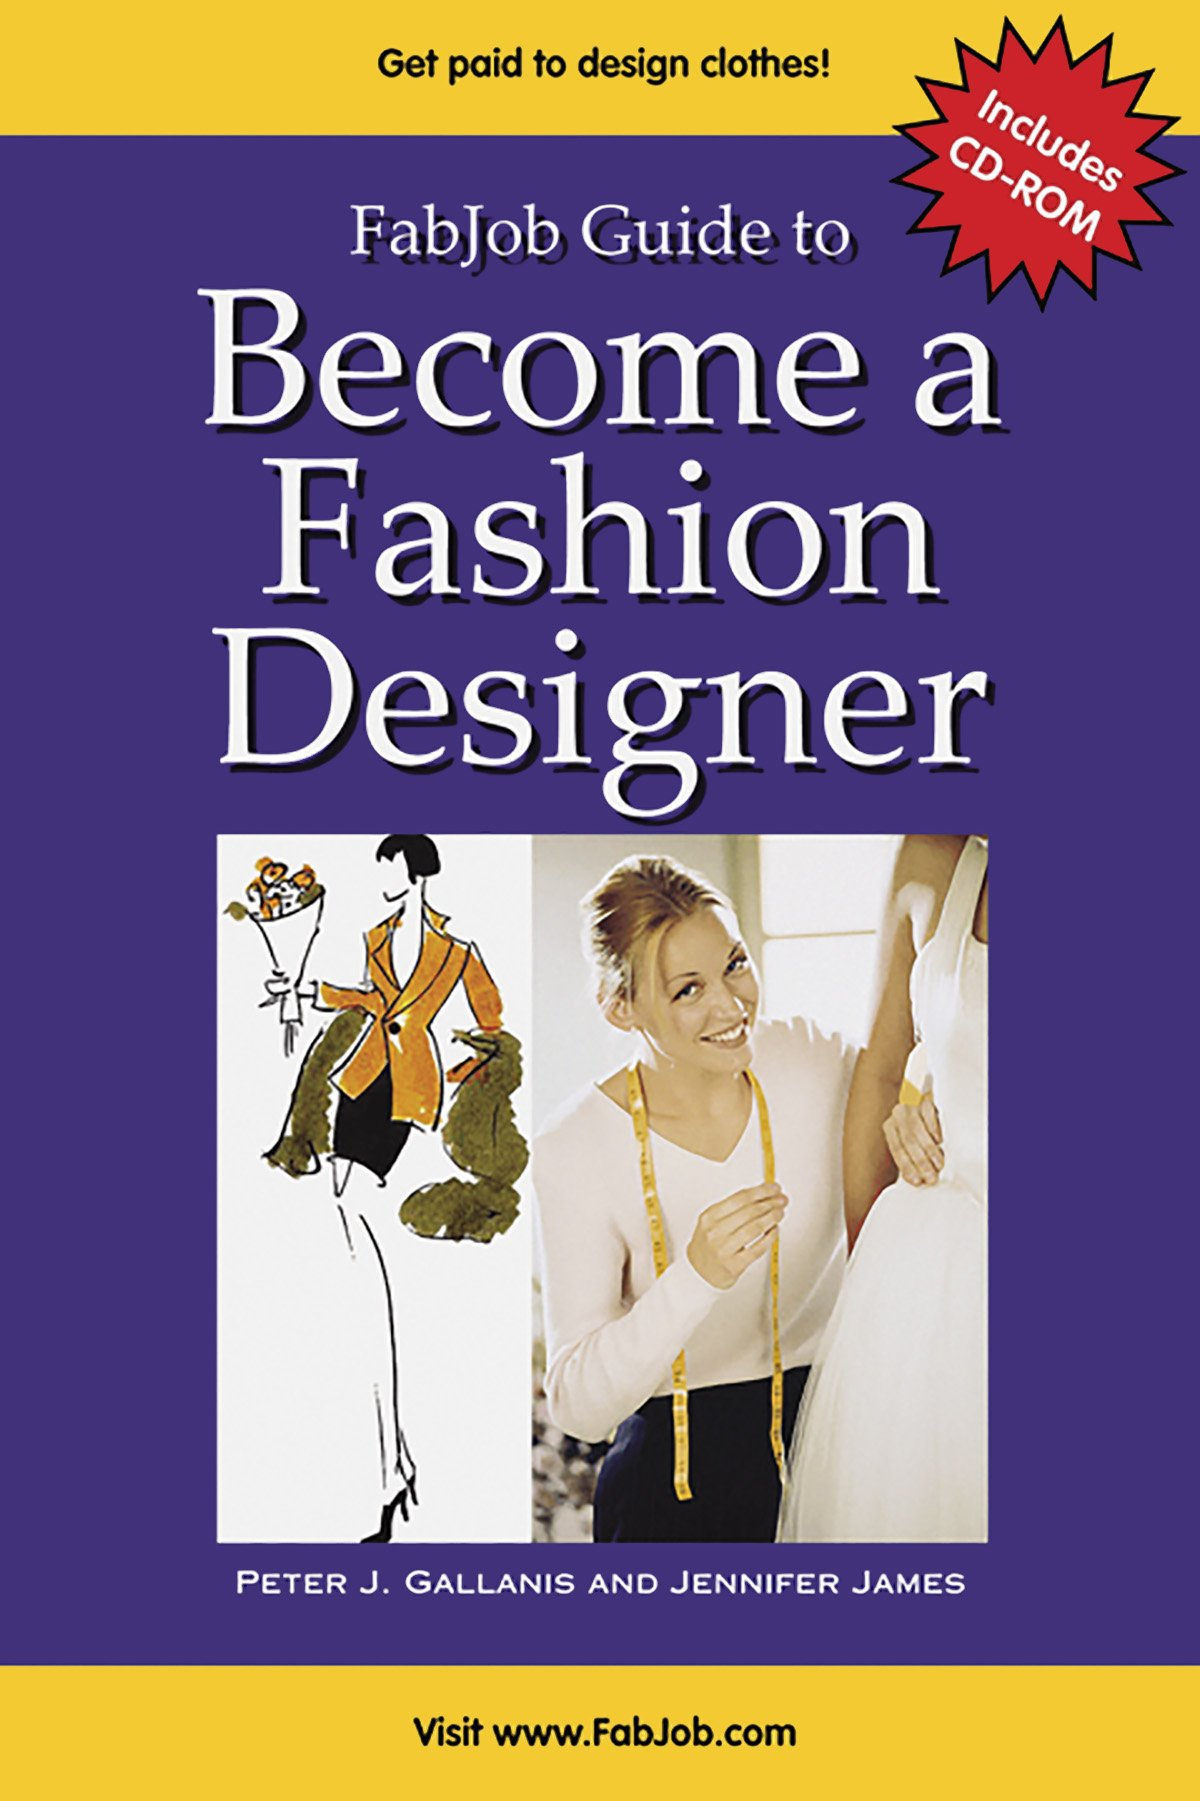 Fabjob Guide To Become A Fashion Designer With Cd Rom Fabjob Guides Peter J Gallanis Jennifer James 9781894638753 Amazon Com Books